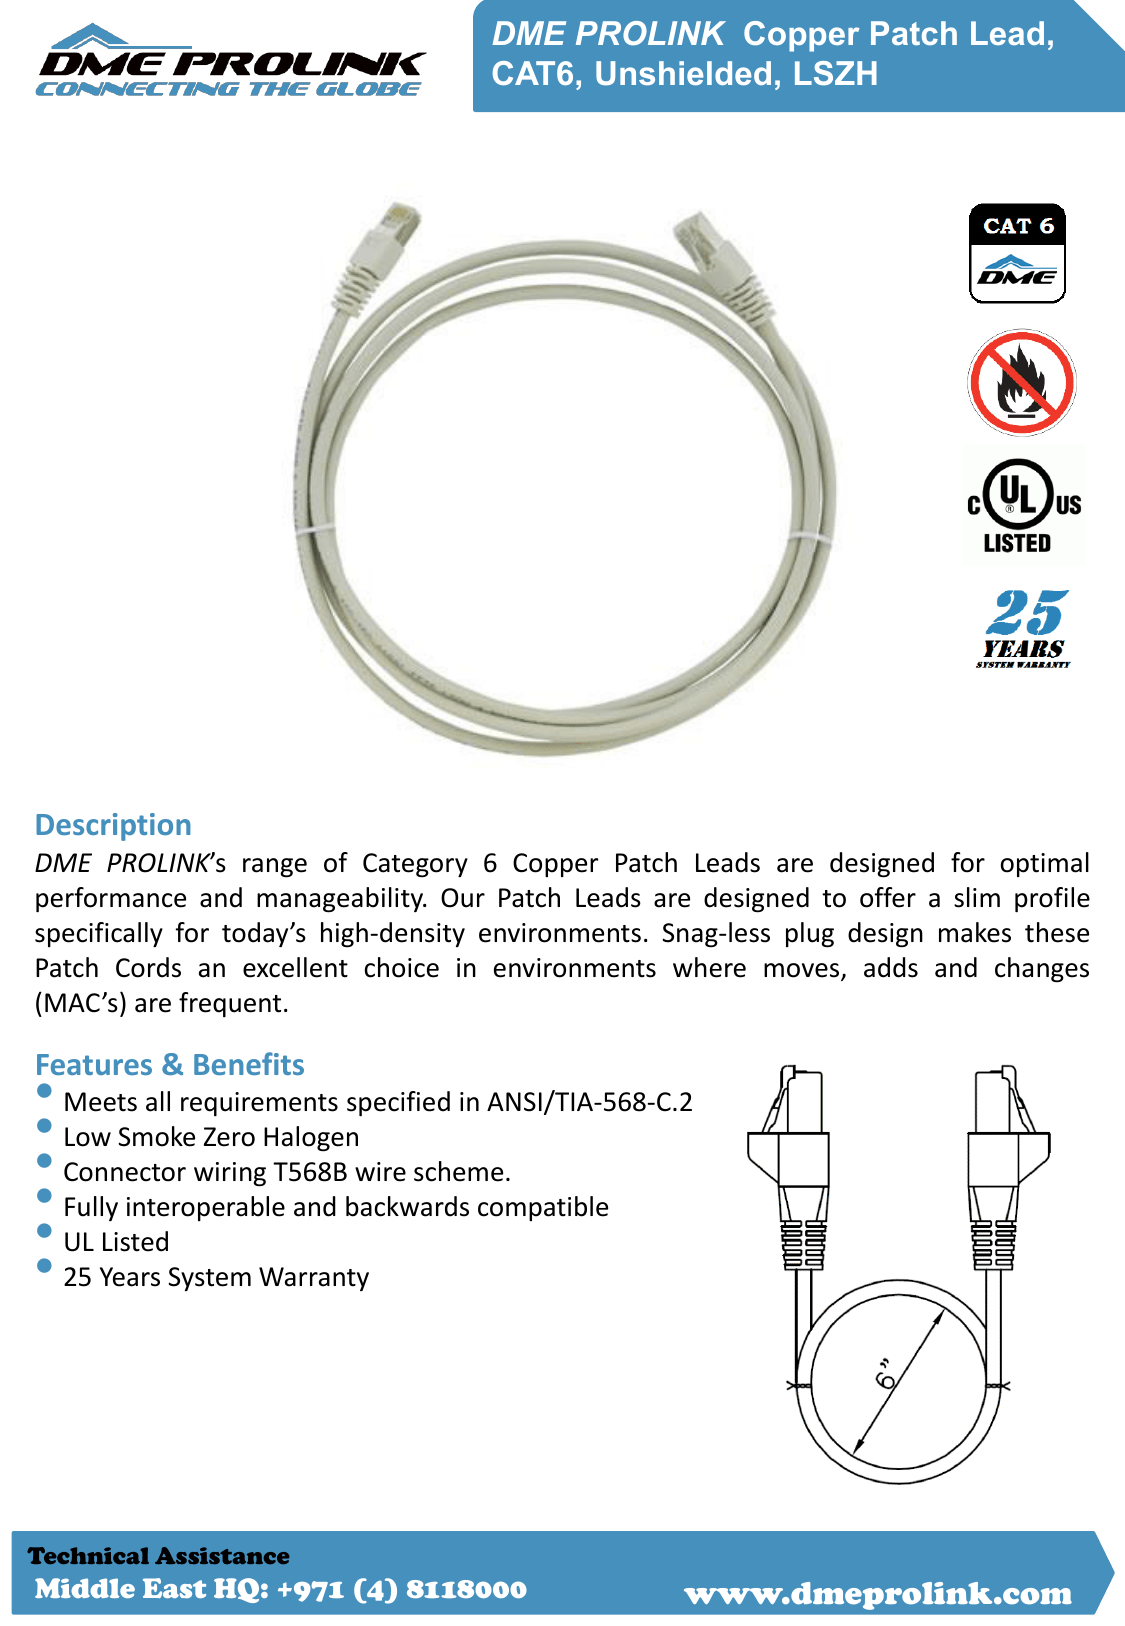 hight resolution of dme prolink copper patch lead cat6 unshielded lszh